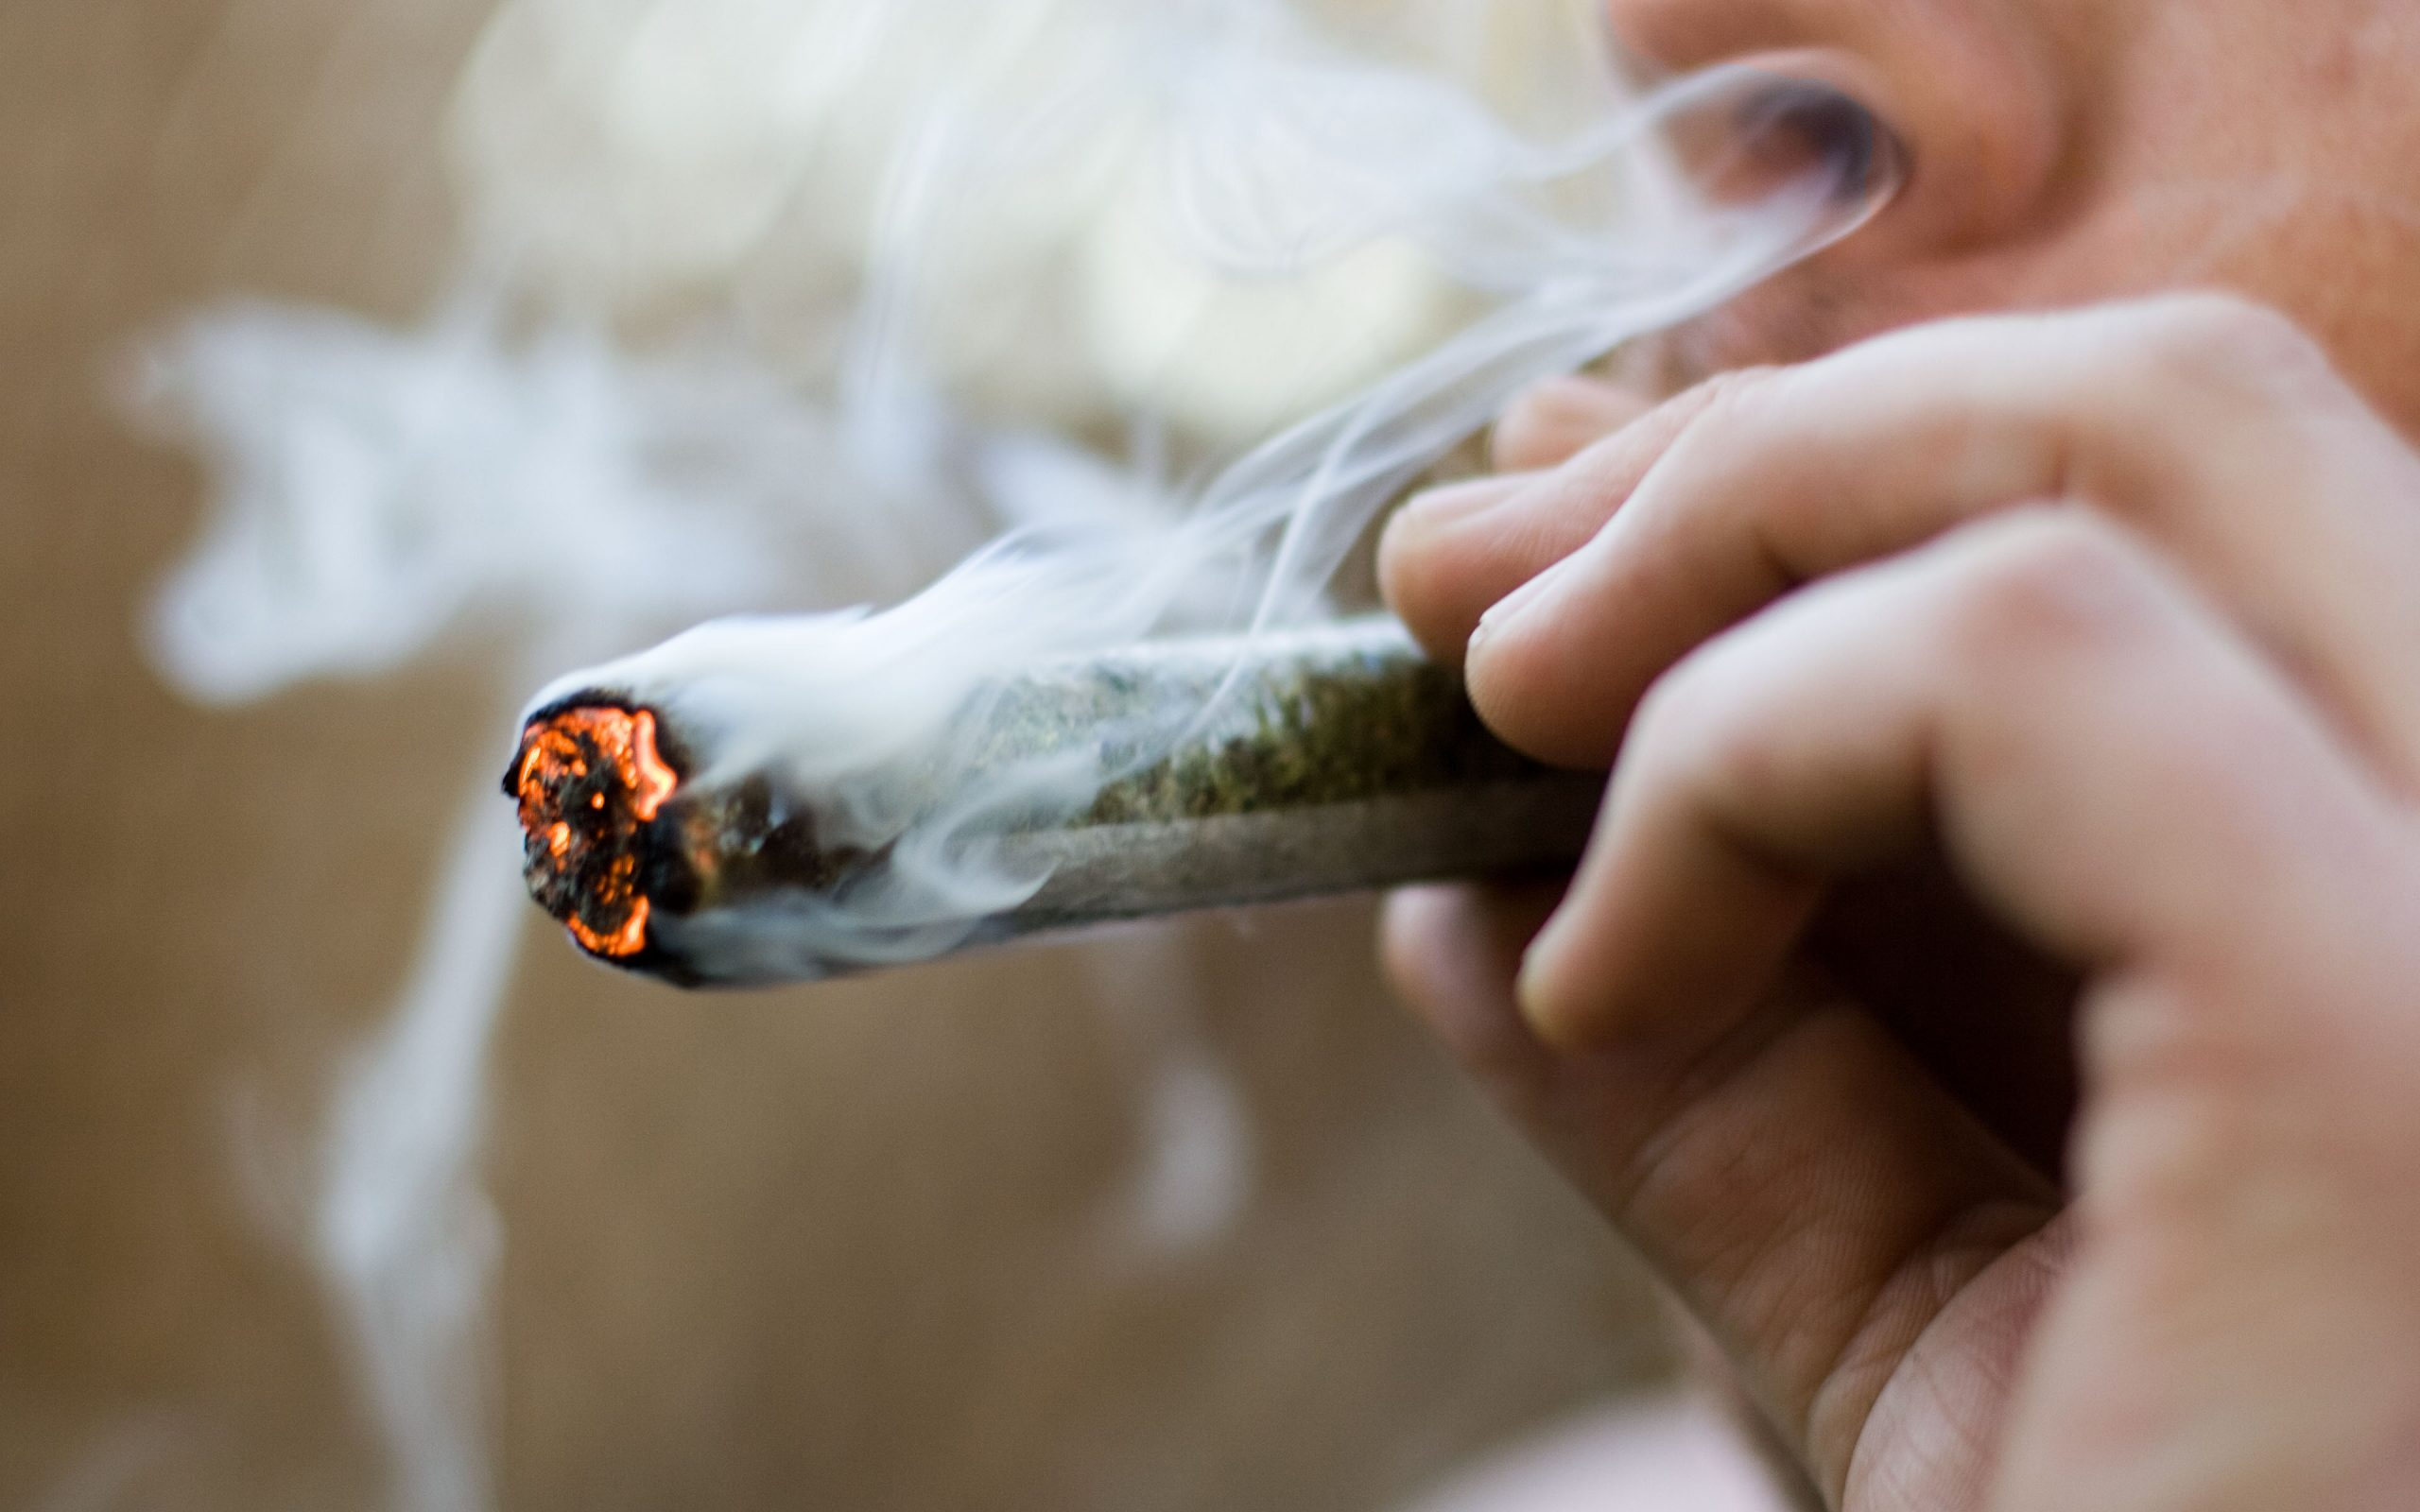 HOW TO GET RID OF MARIJUANA SMELL